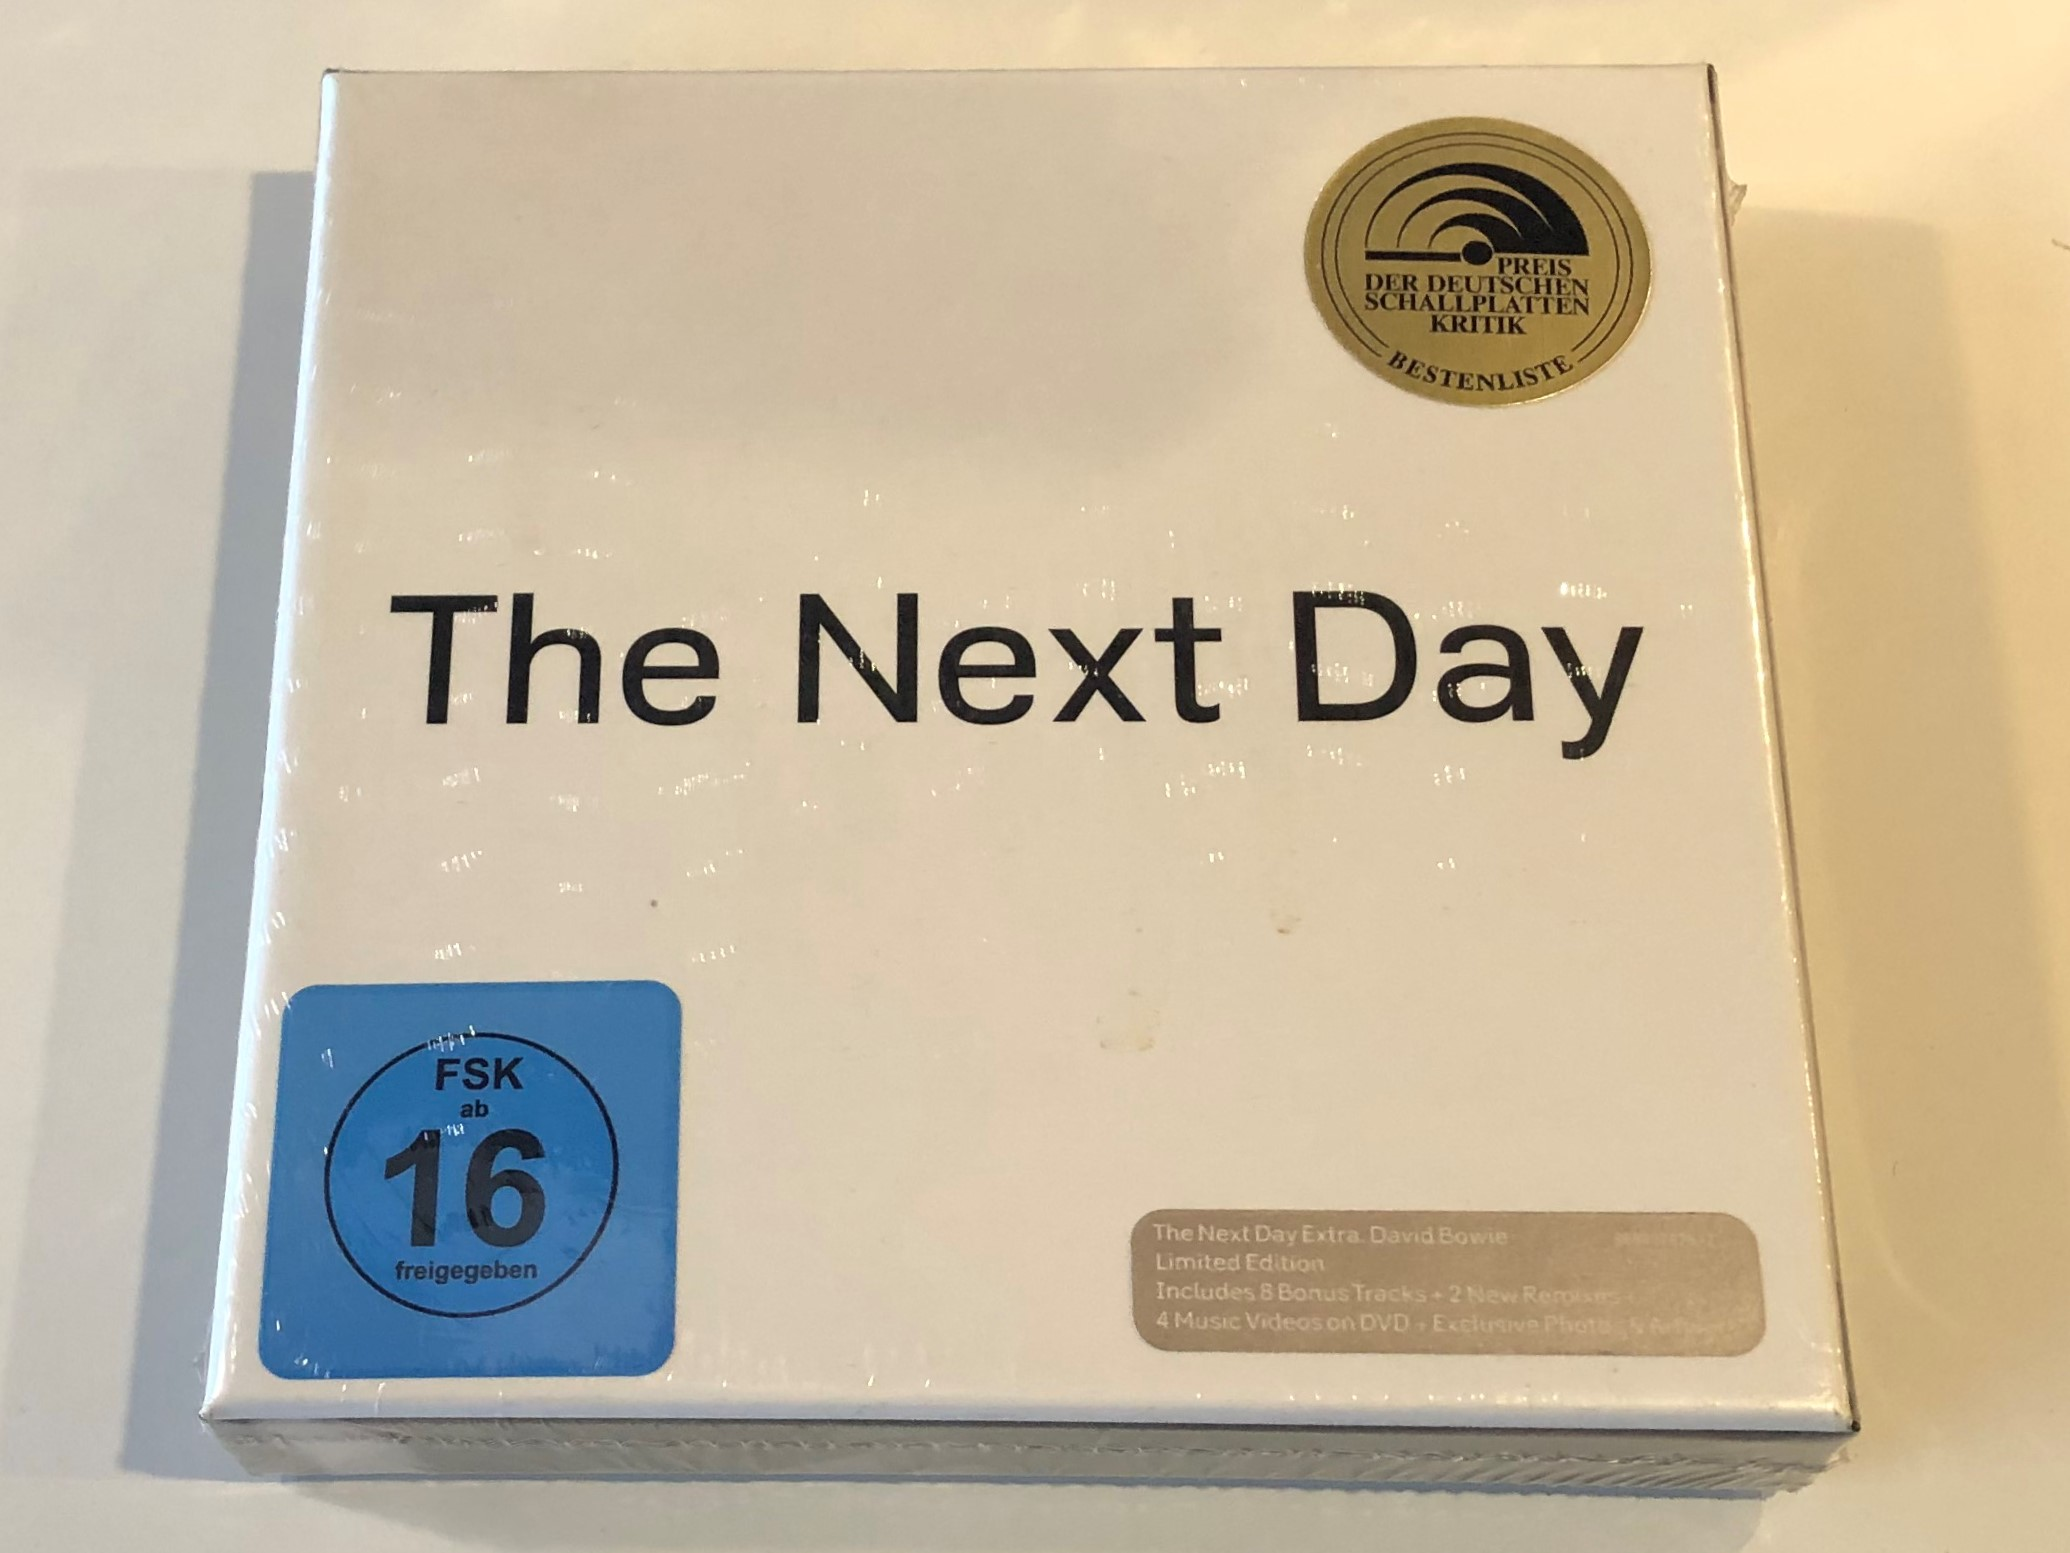 the-next-day-iso-records-2x-audio-cd-dvd-2013-88883787812-1-.jpg